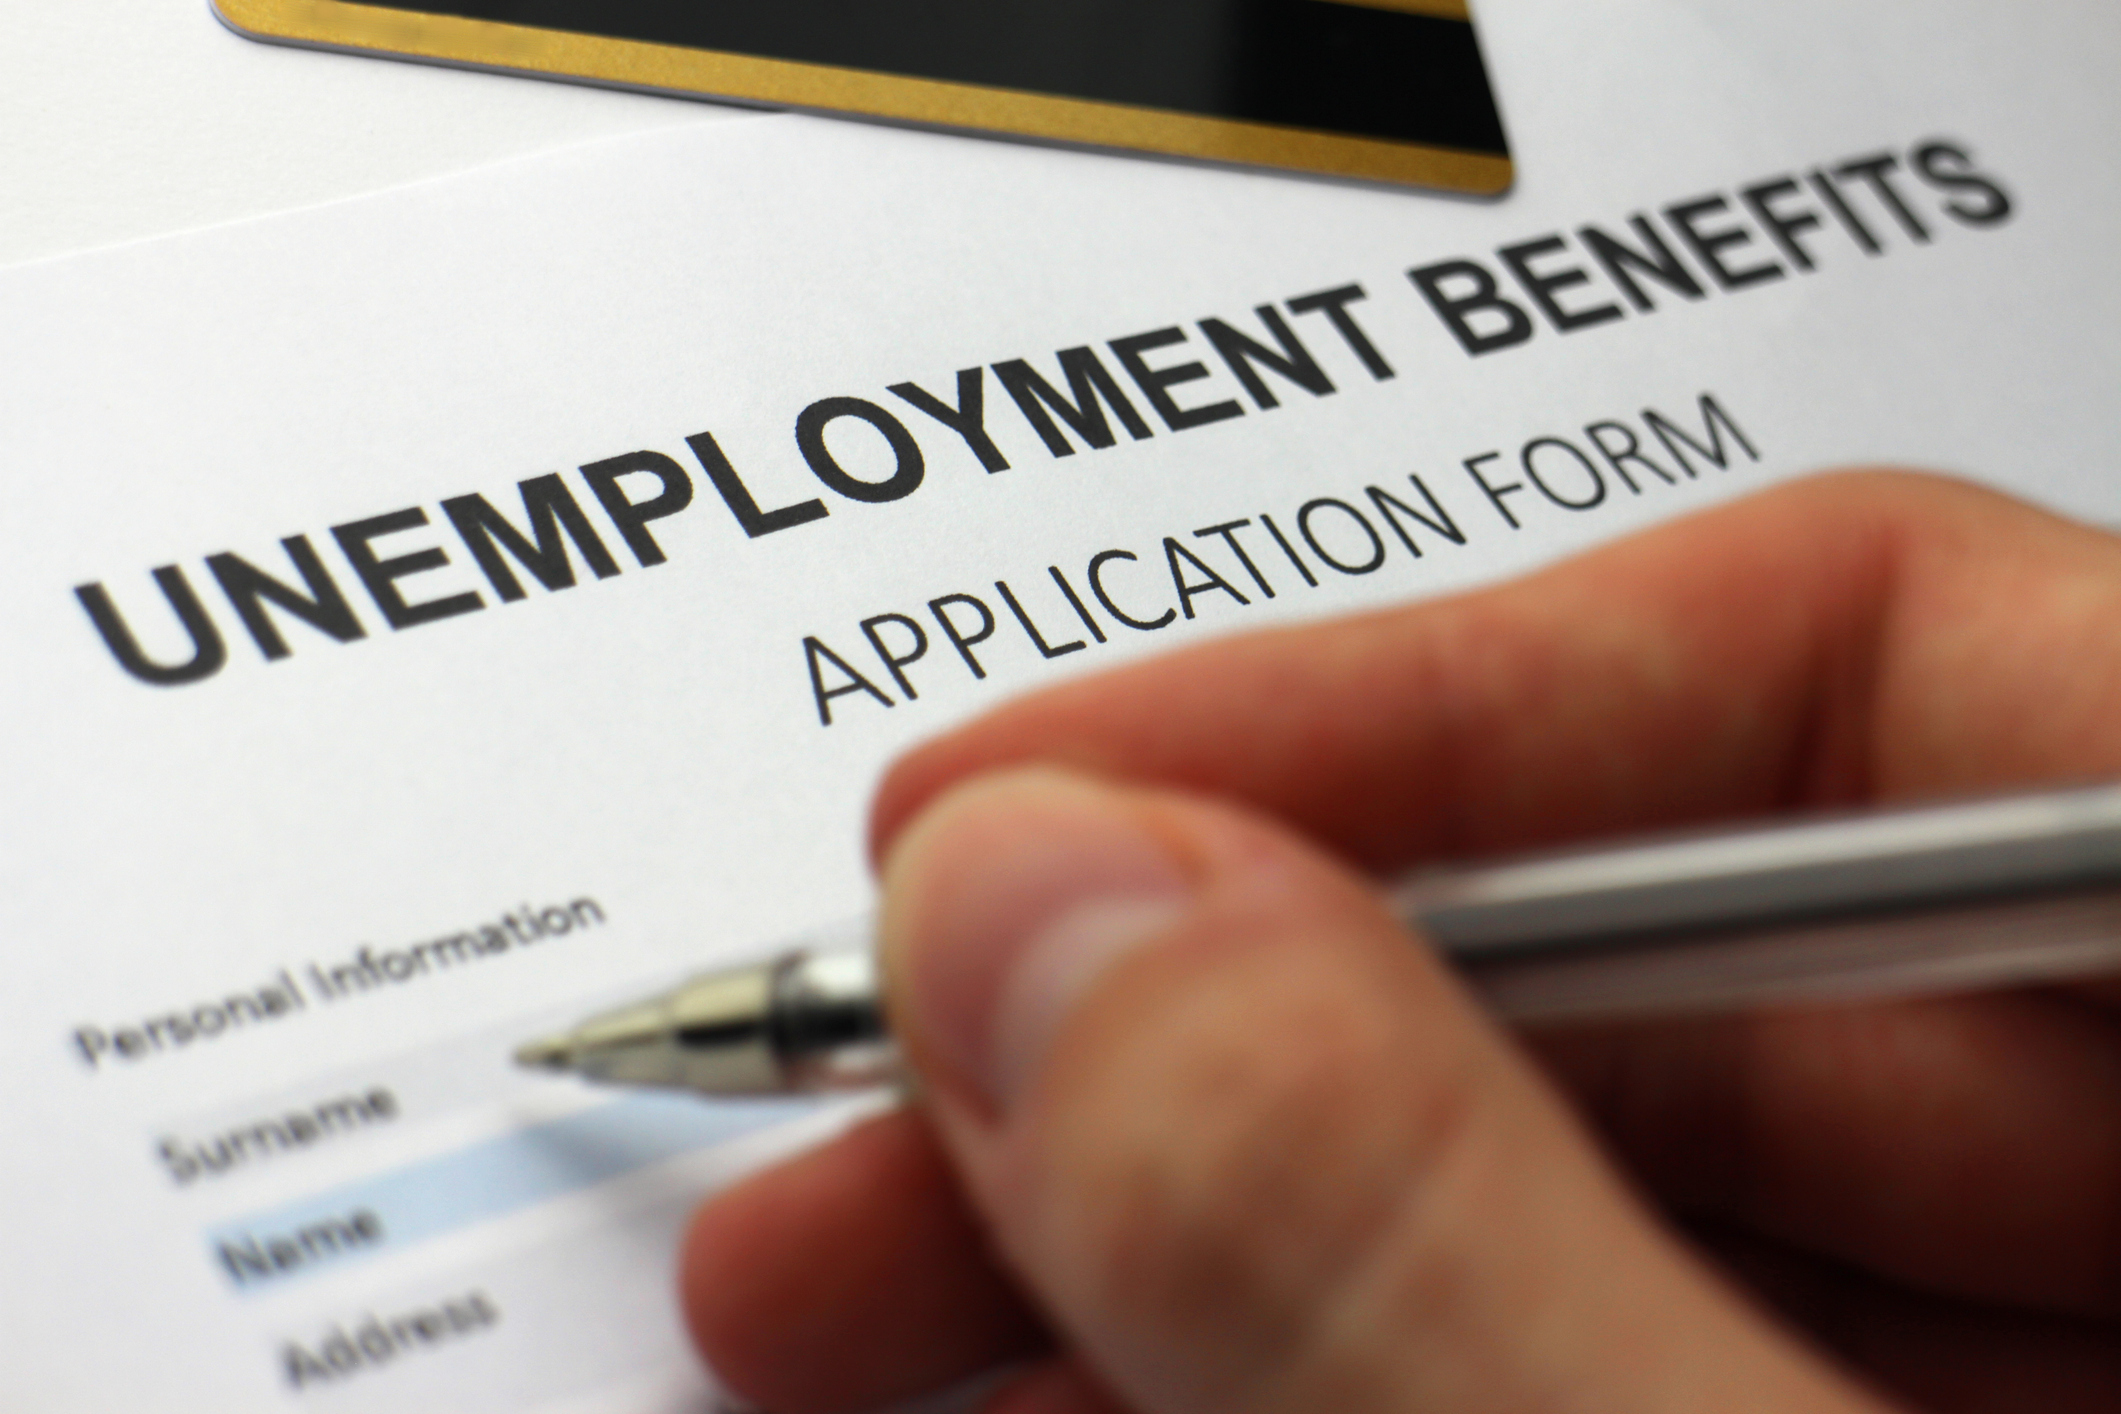 Drug Testing for Unemployment Applicants May Be Coming Soon Thumbnail